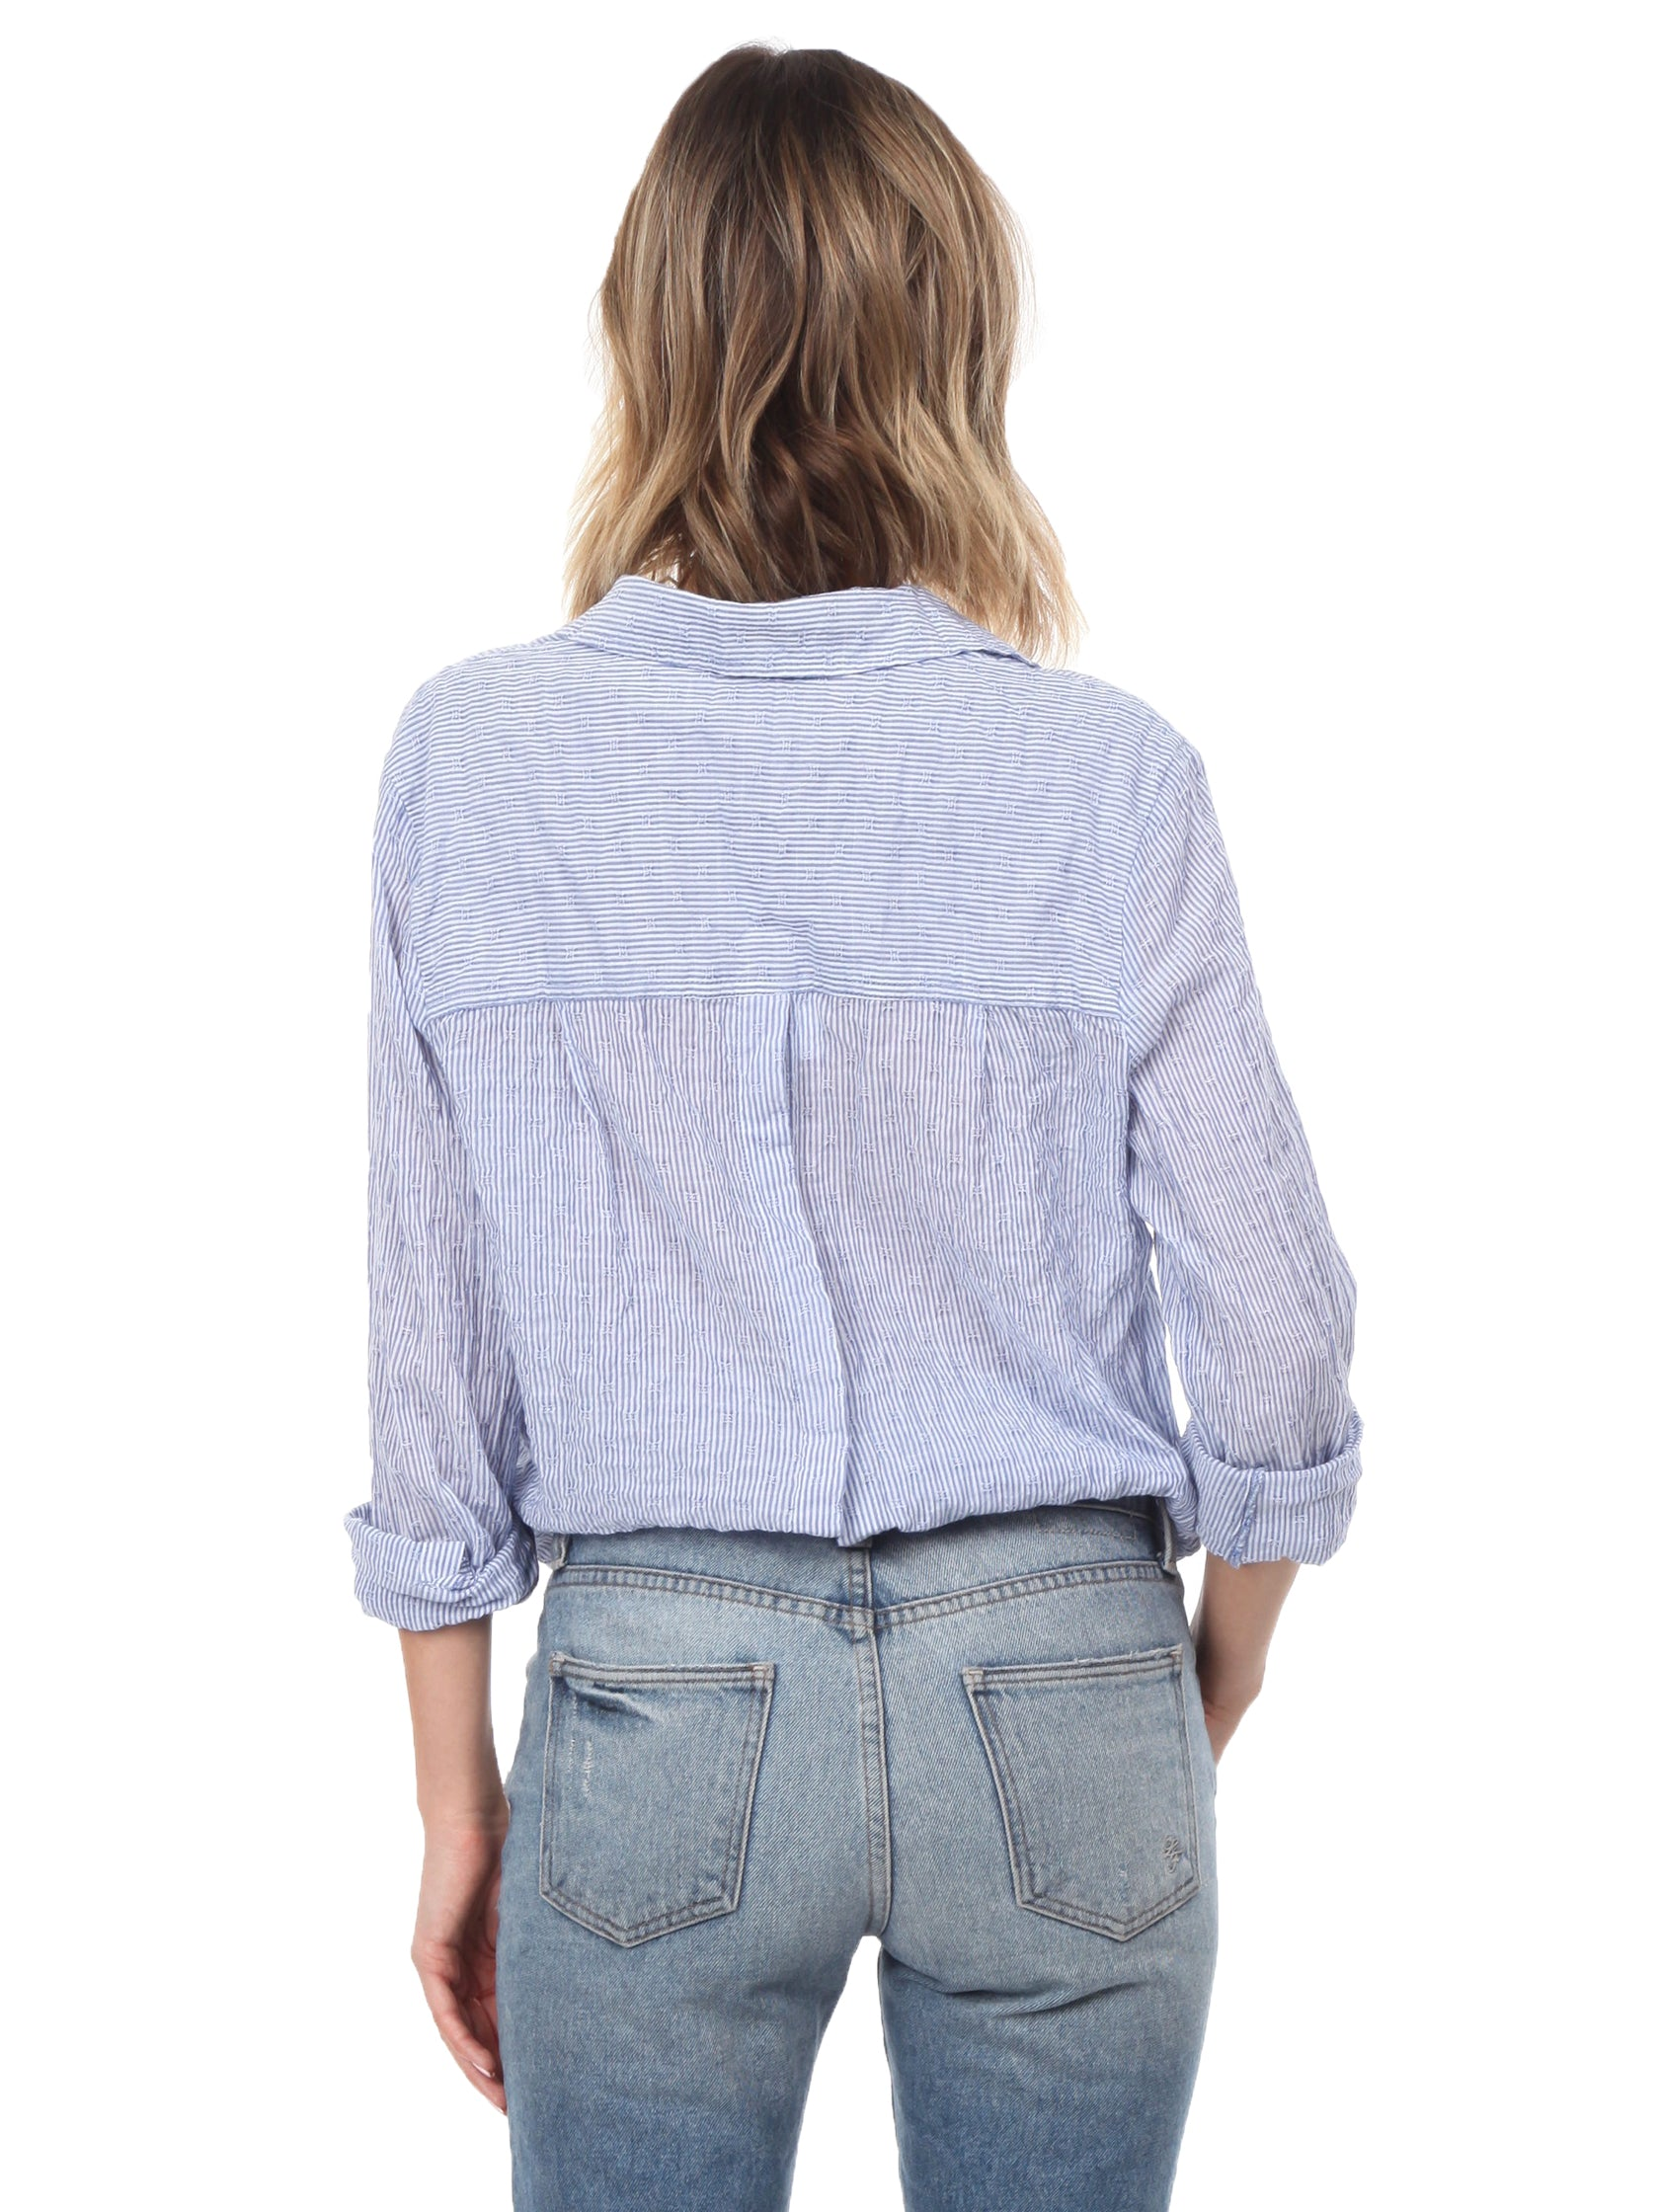 Girl outfit in a top rental from Free People called No Limits Stripe Stretch Cotton Shirt